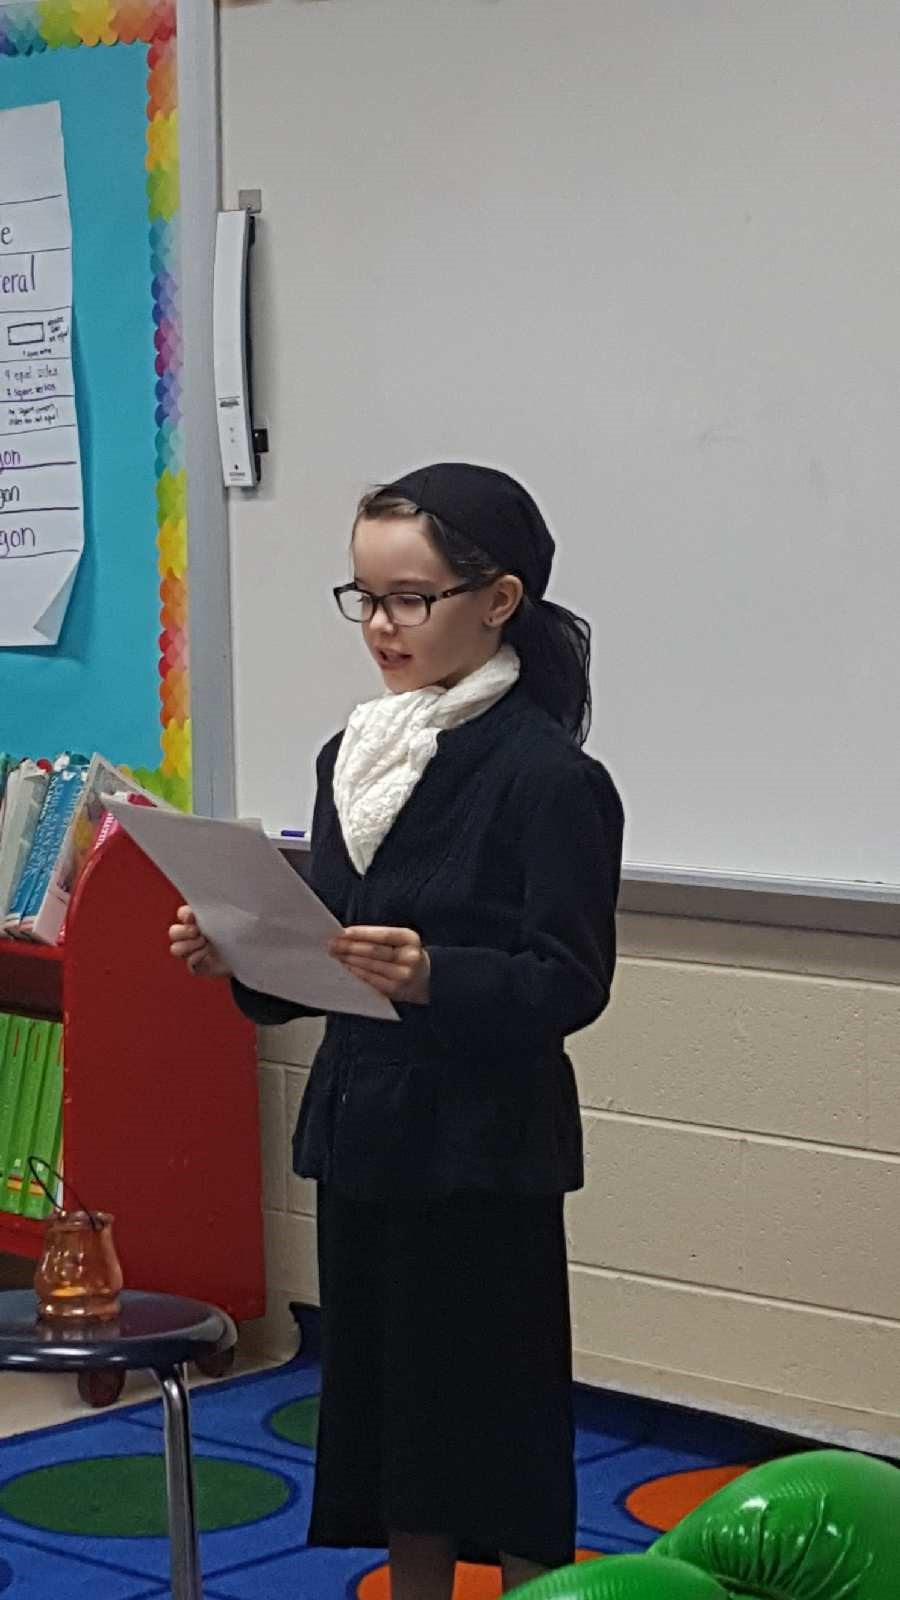 Eakin celebrates African-American contributions through live Black History Wax Museum